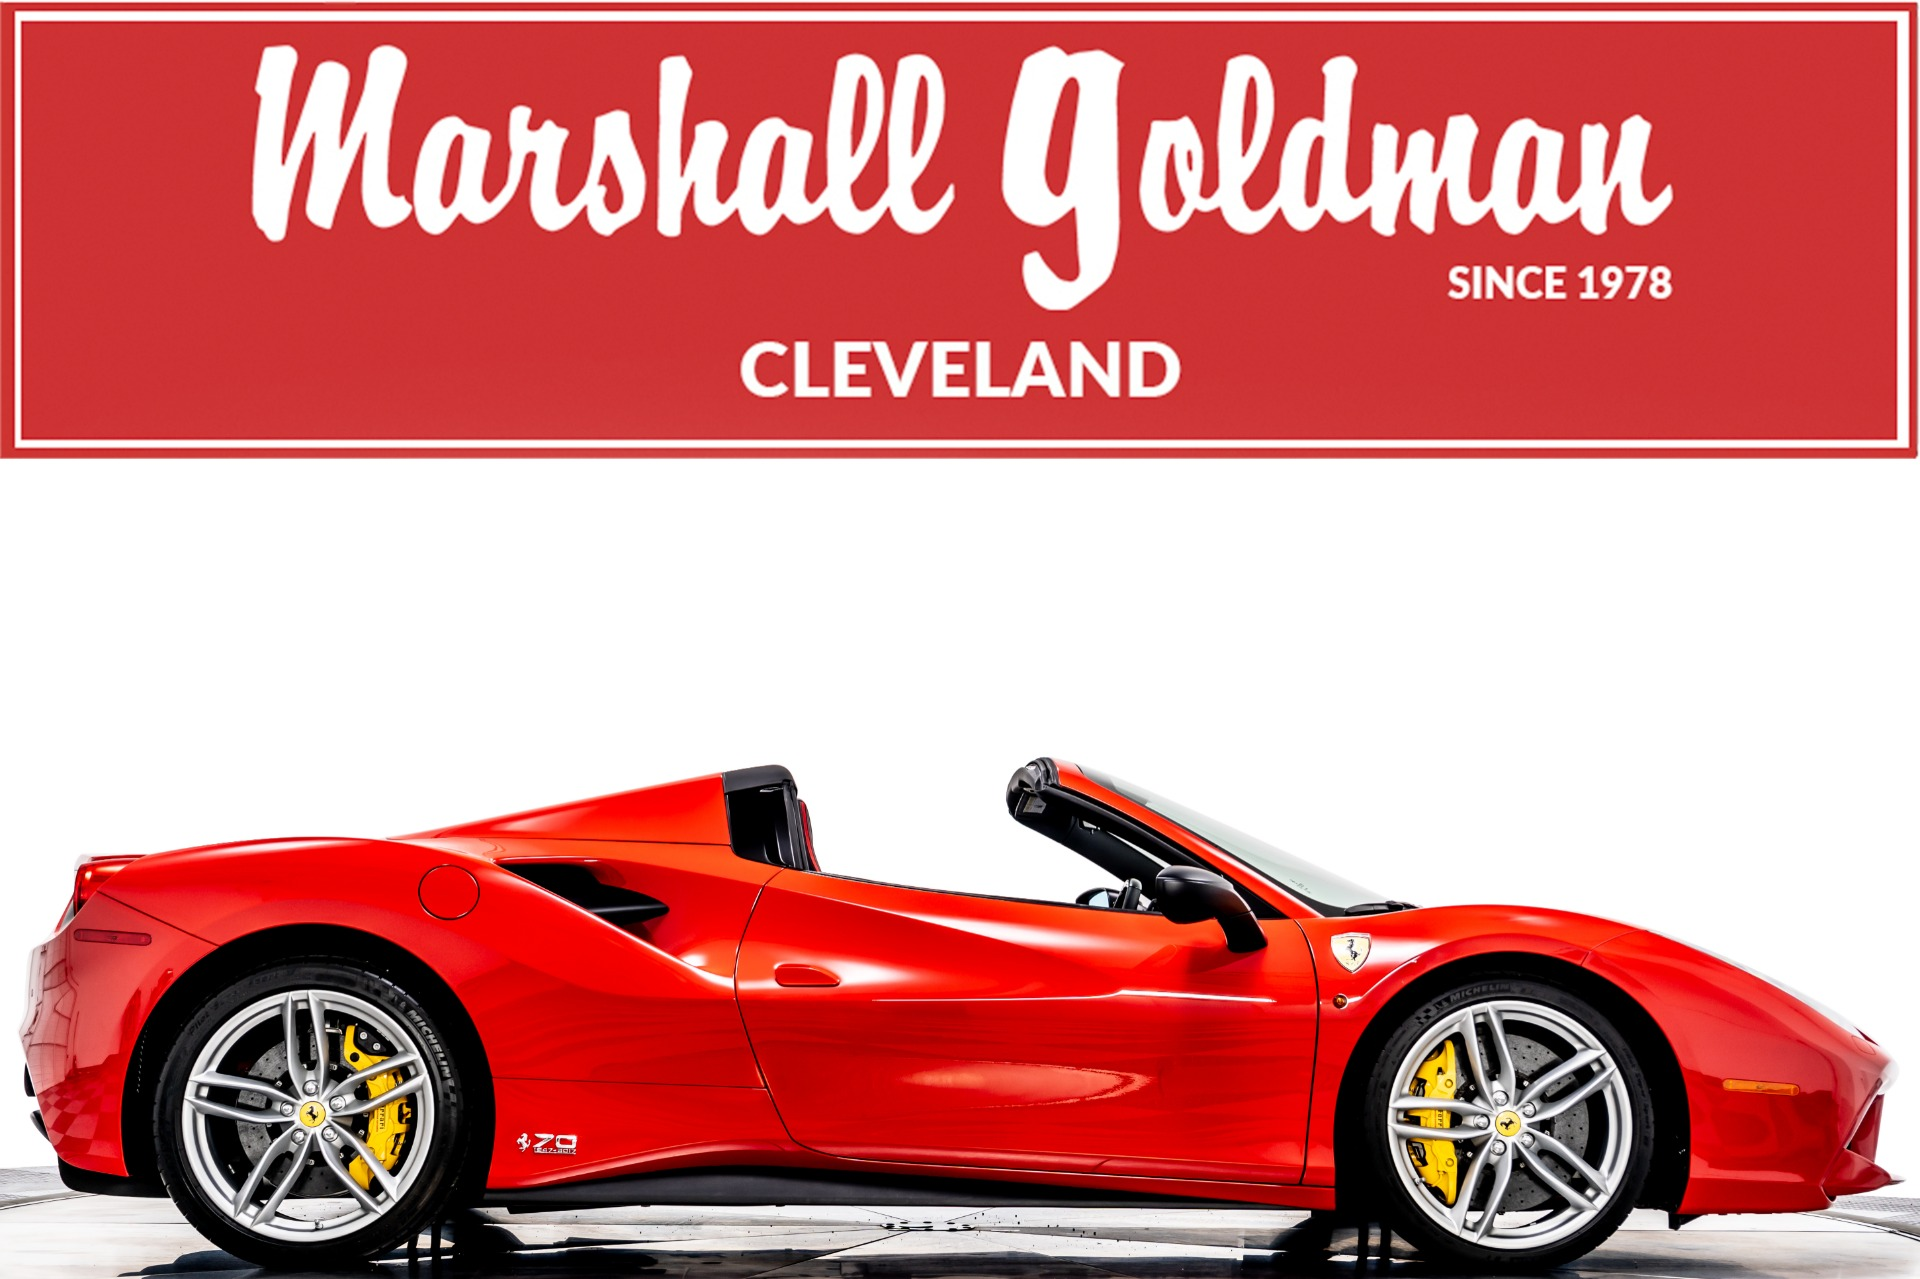 Used 2018 Ferrari 488 Spider 70th Anniversary For Sale 369 900 Marshall Goldman Motor Sales Stock W70th488